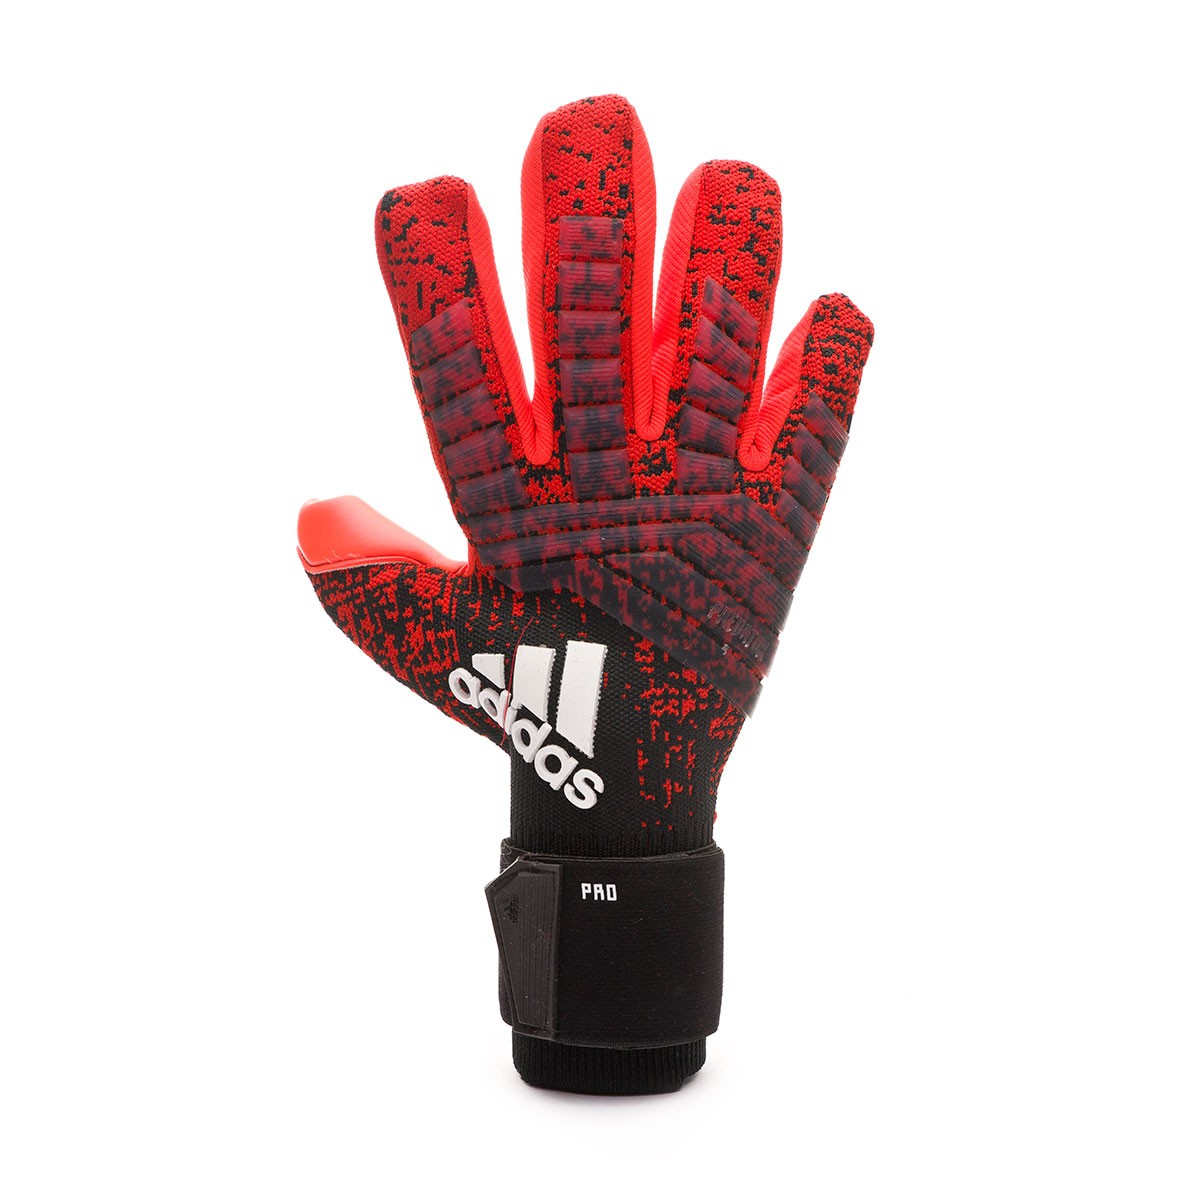 1677cabf5b3 Glove adidas Predator Pro Active red-Black-Solar red - Football store  Fútbol Emotion